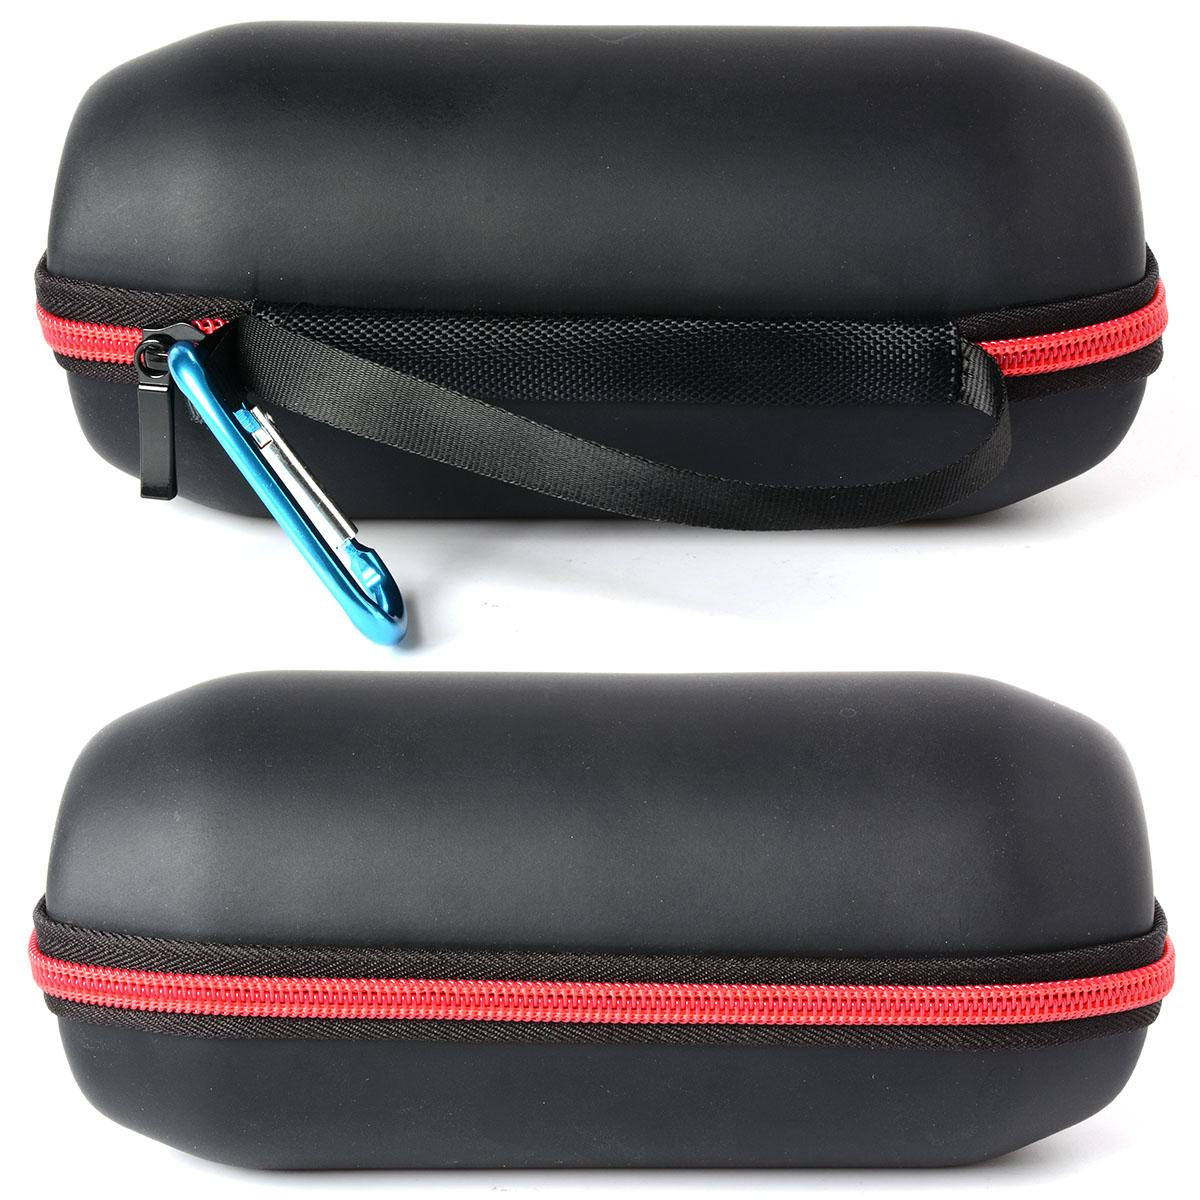 Review Xcsource Portable Travel Hard Black Case Cover Bag For Jbl Source · XCSOURCE Hot Pill Portable Mini New Stereo Bluetooth Wireless Protection Bag Case ...